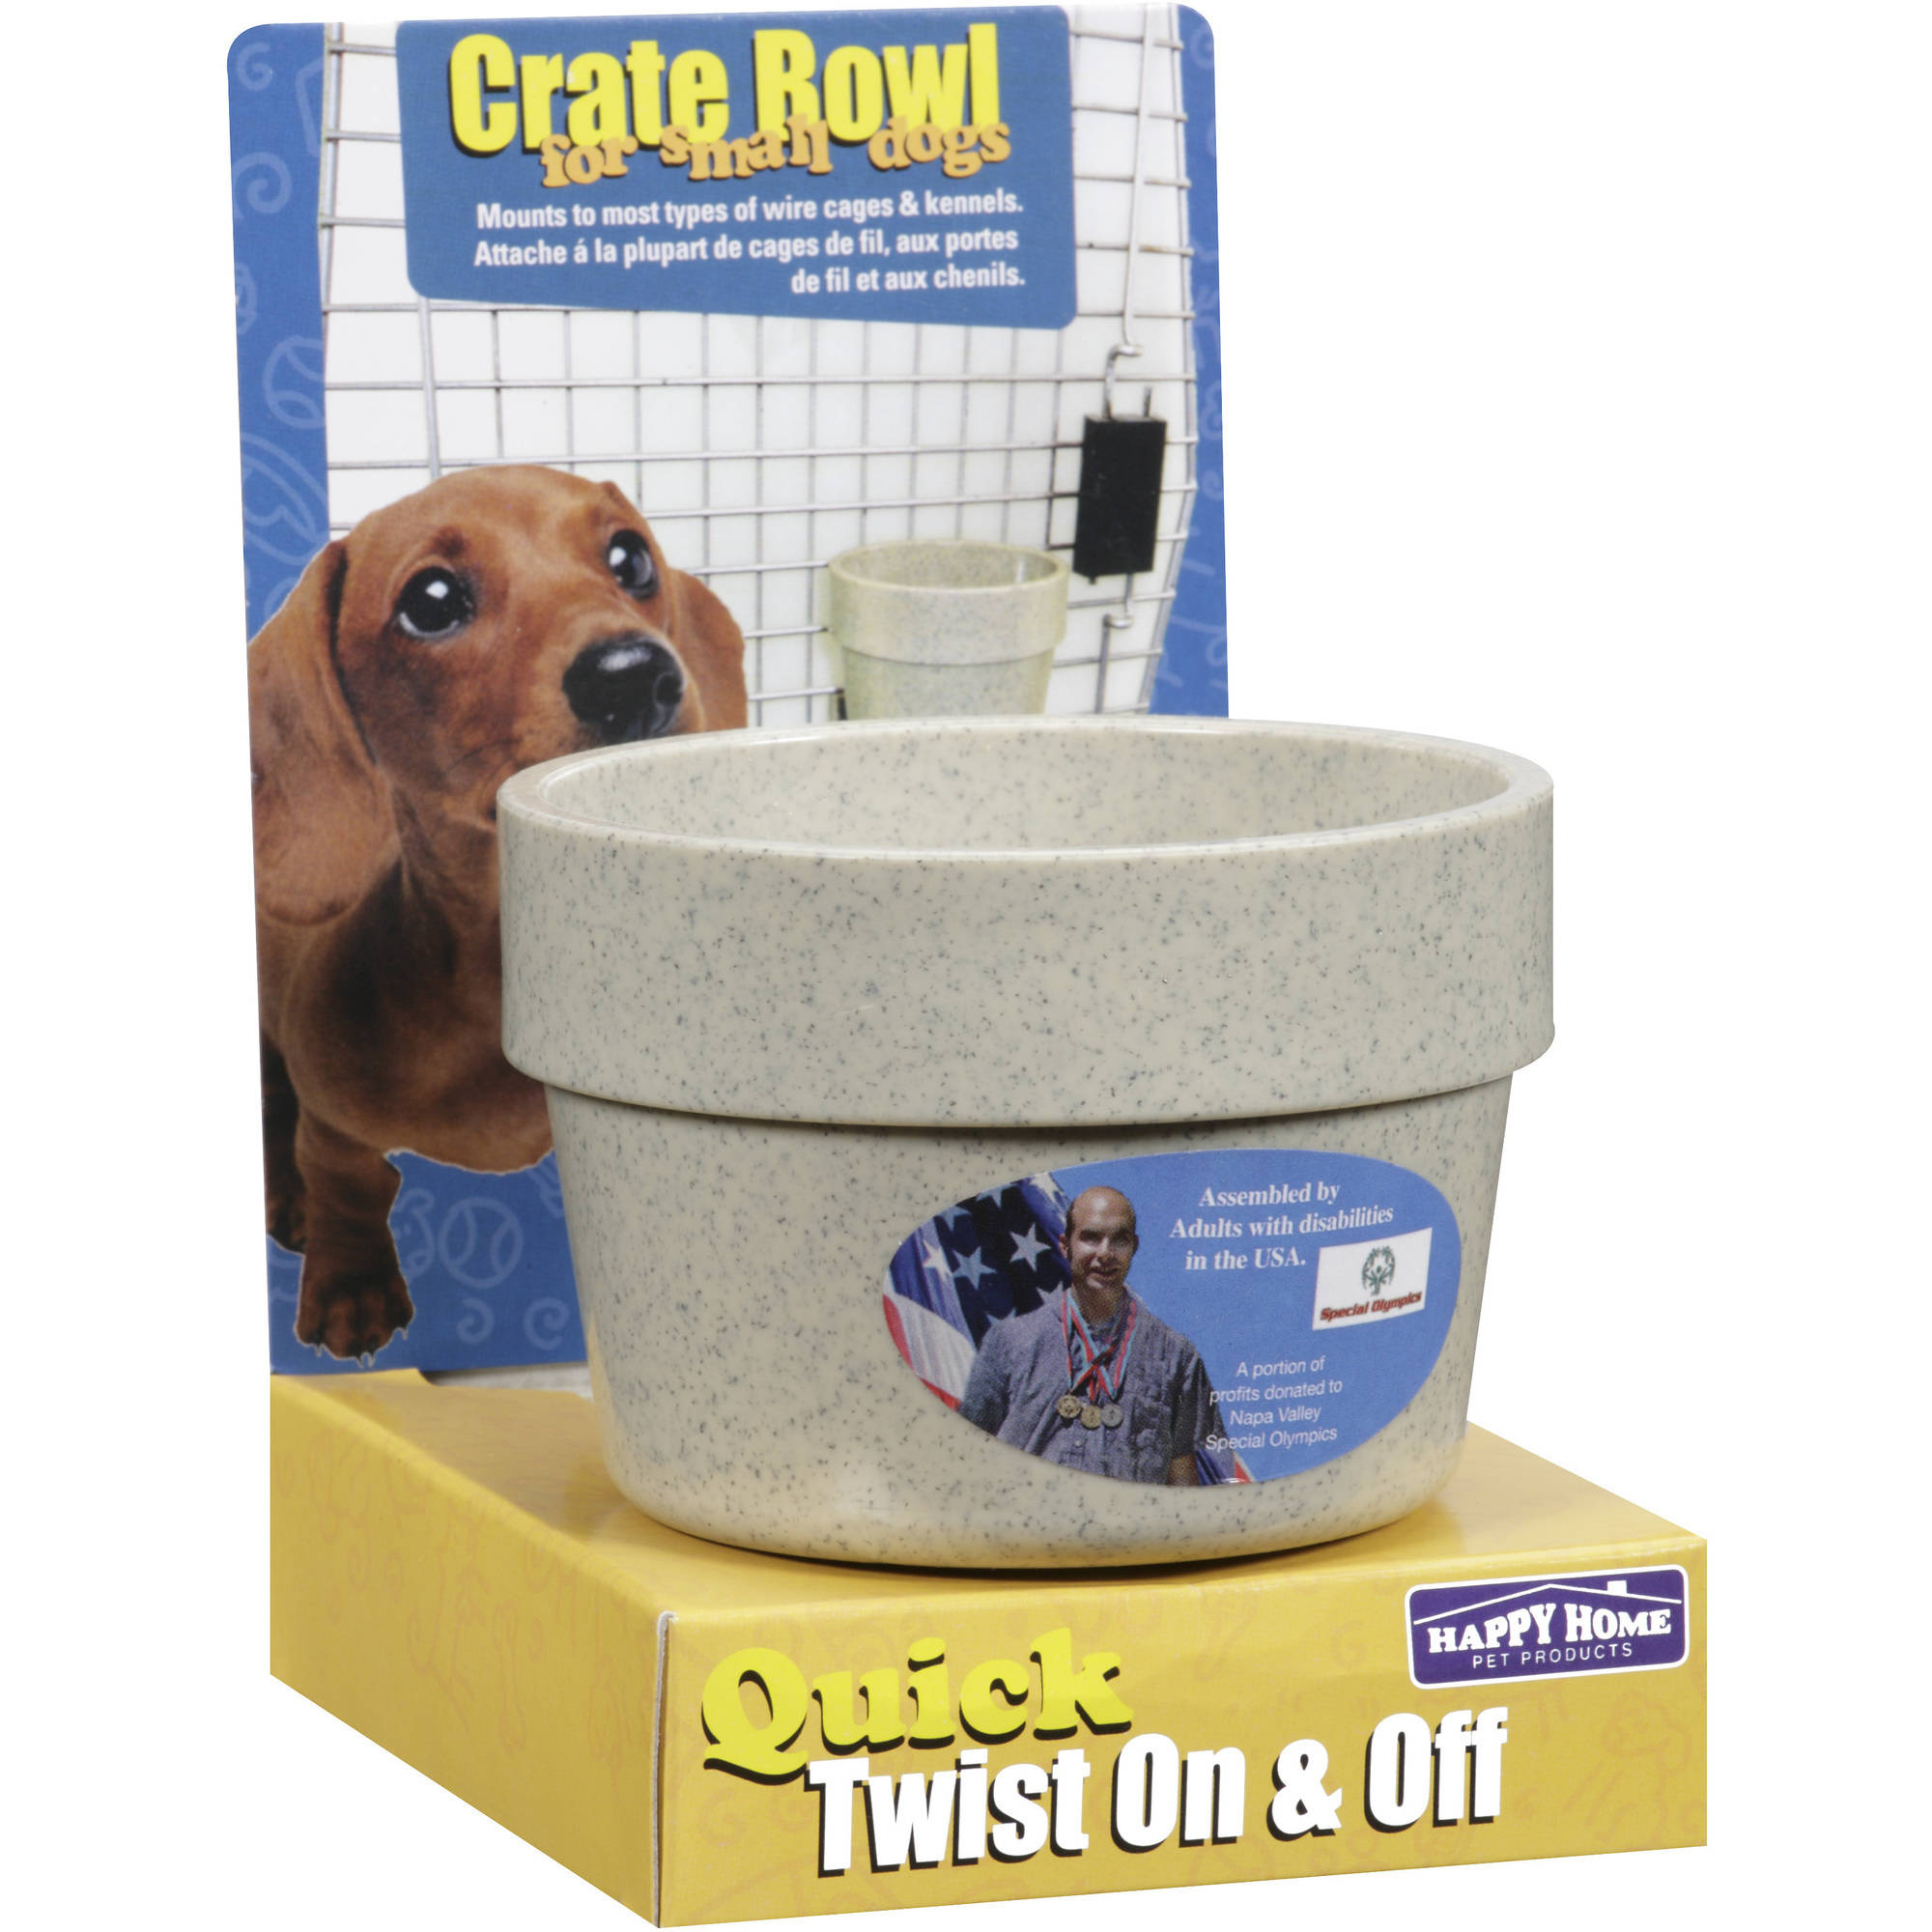 Happy Home Pet Products Dog Crate Bowl For Small Dogs, 1ct